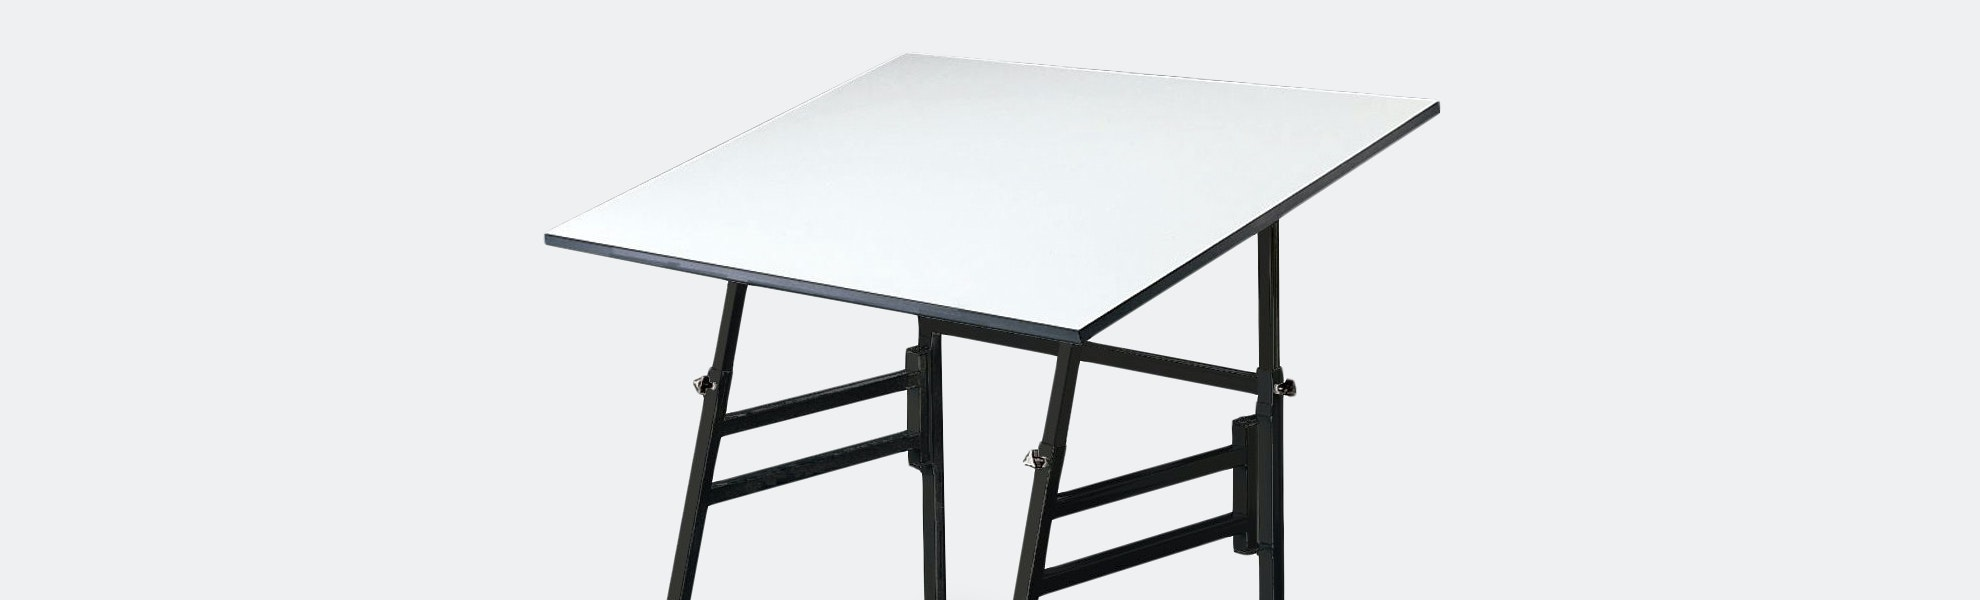 Alvin Professional Drafting Table